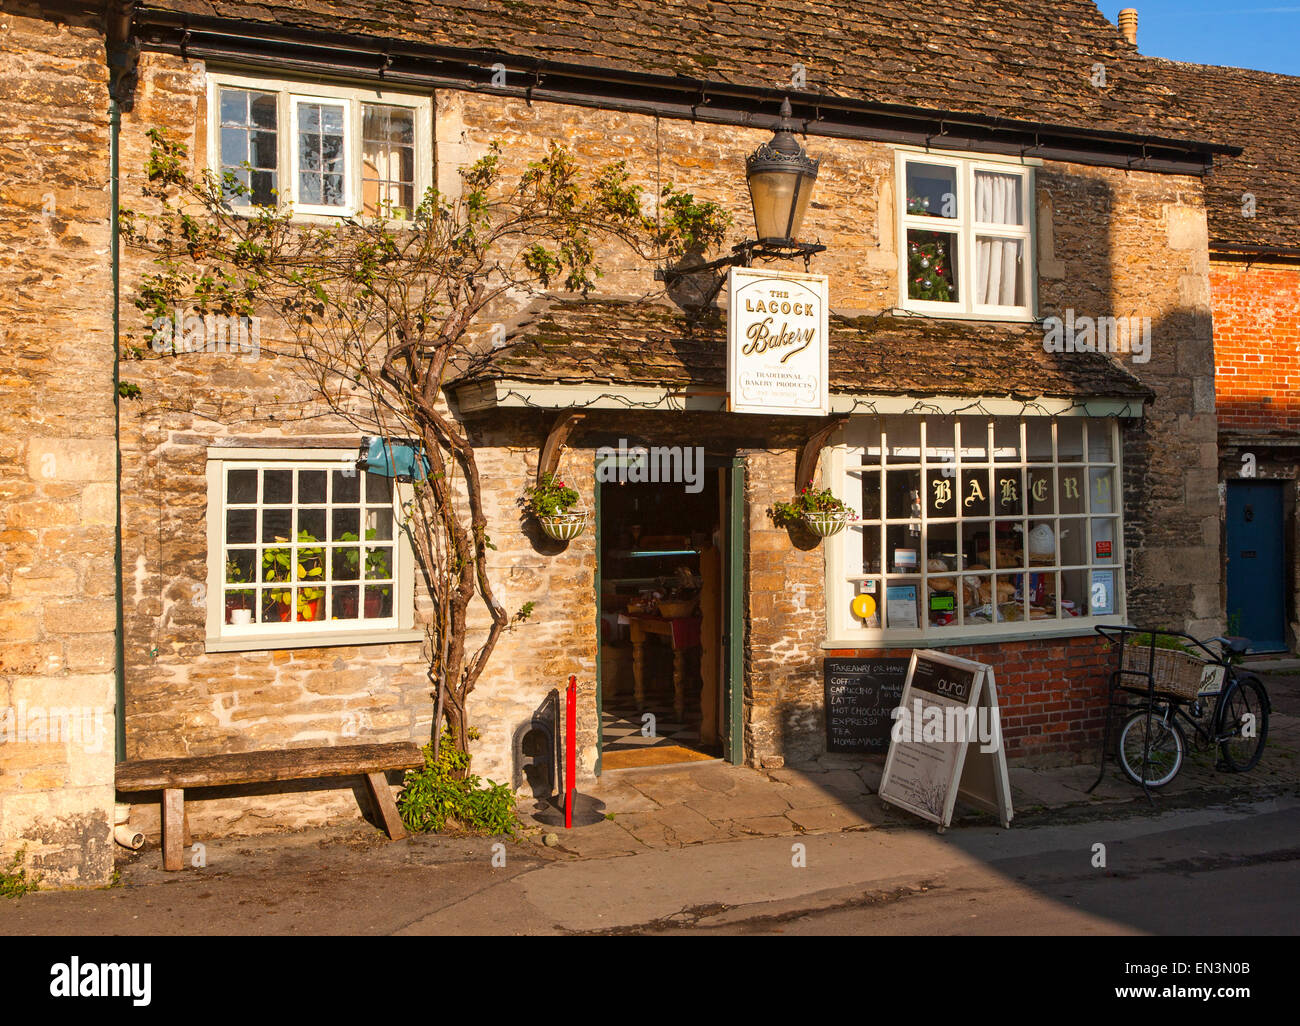 Traditional Old Fashioned Exterior Of Village Bakery Shop At Lacock Wiltshire England UK